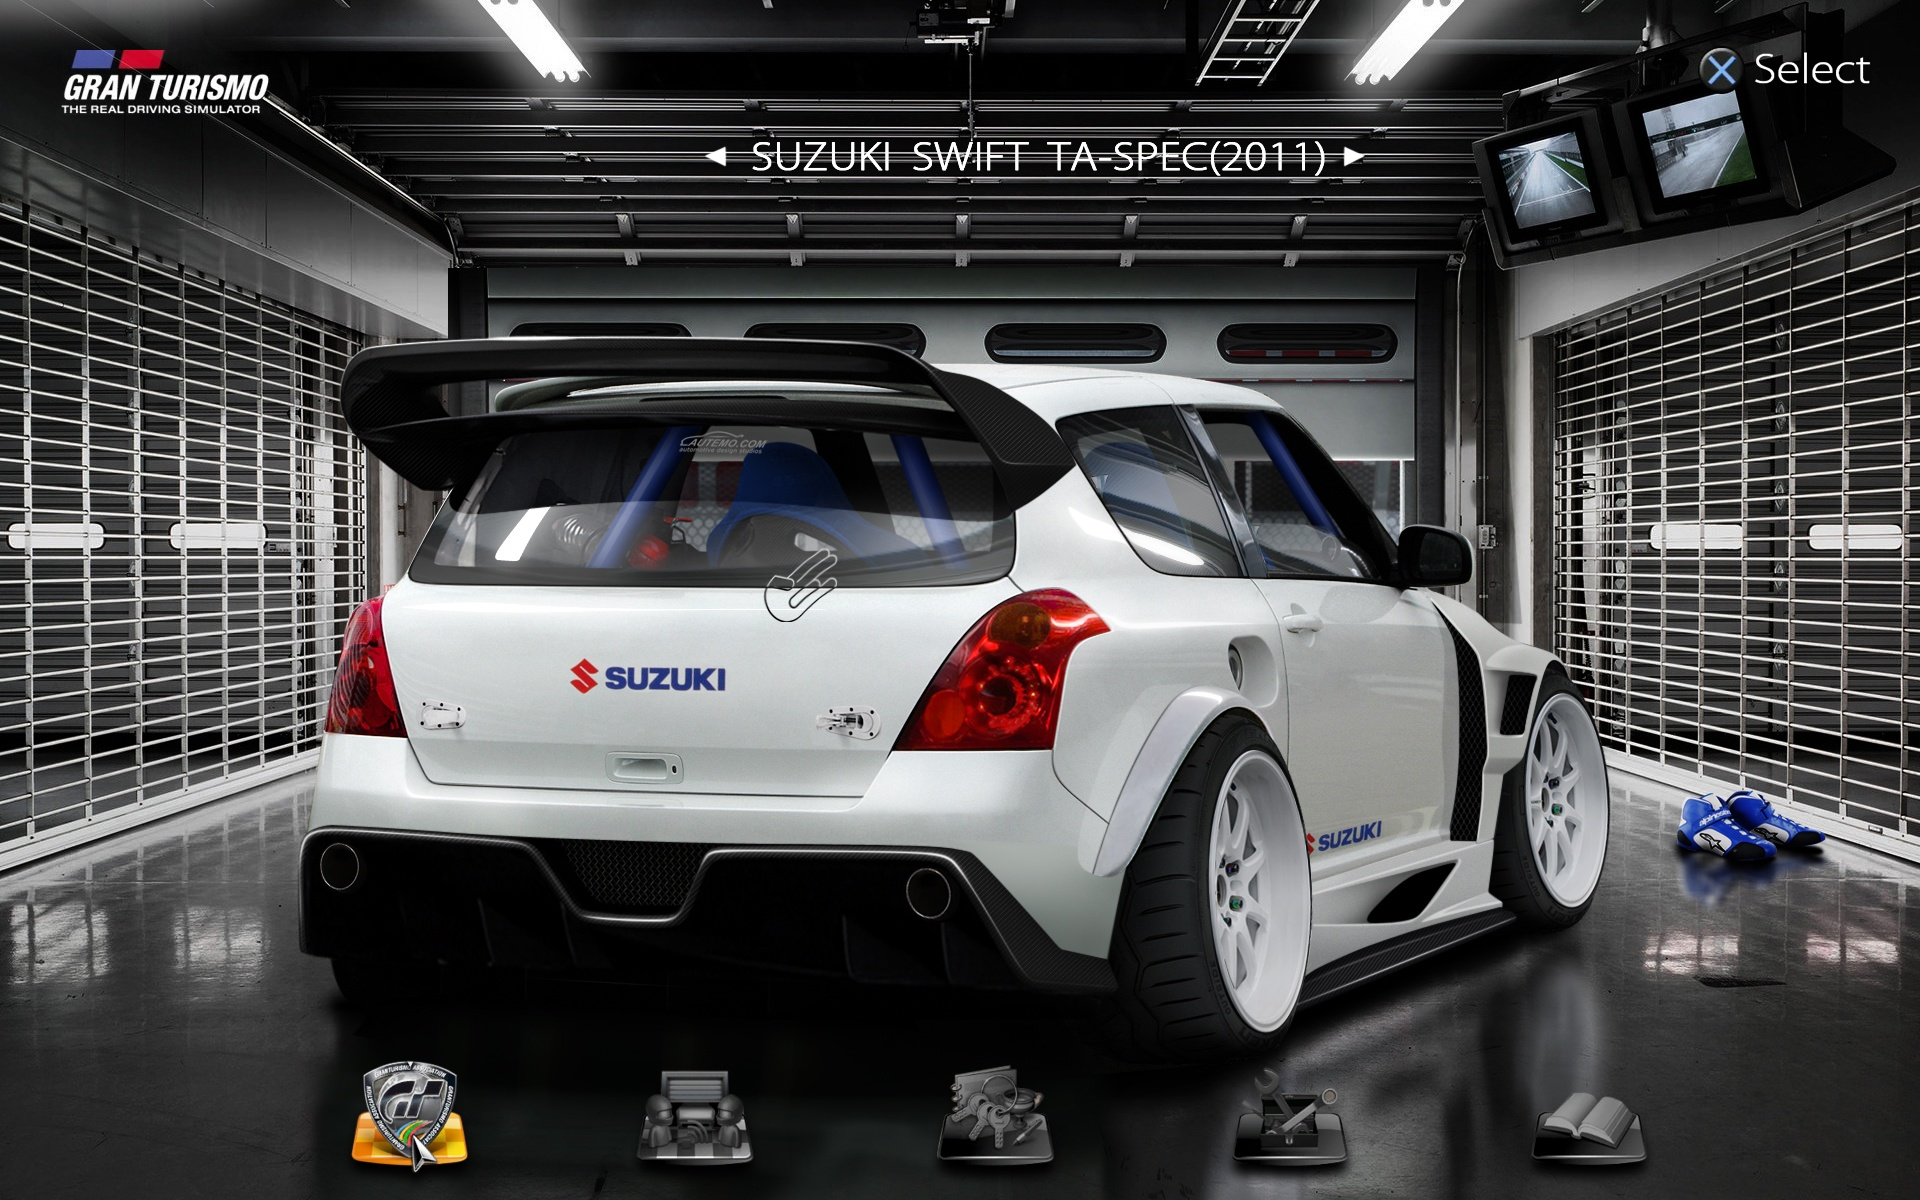 Suzuki Swift Modified Parts